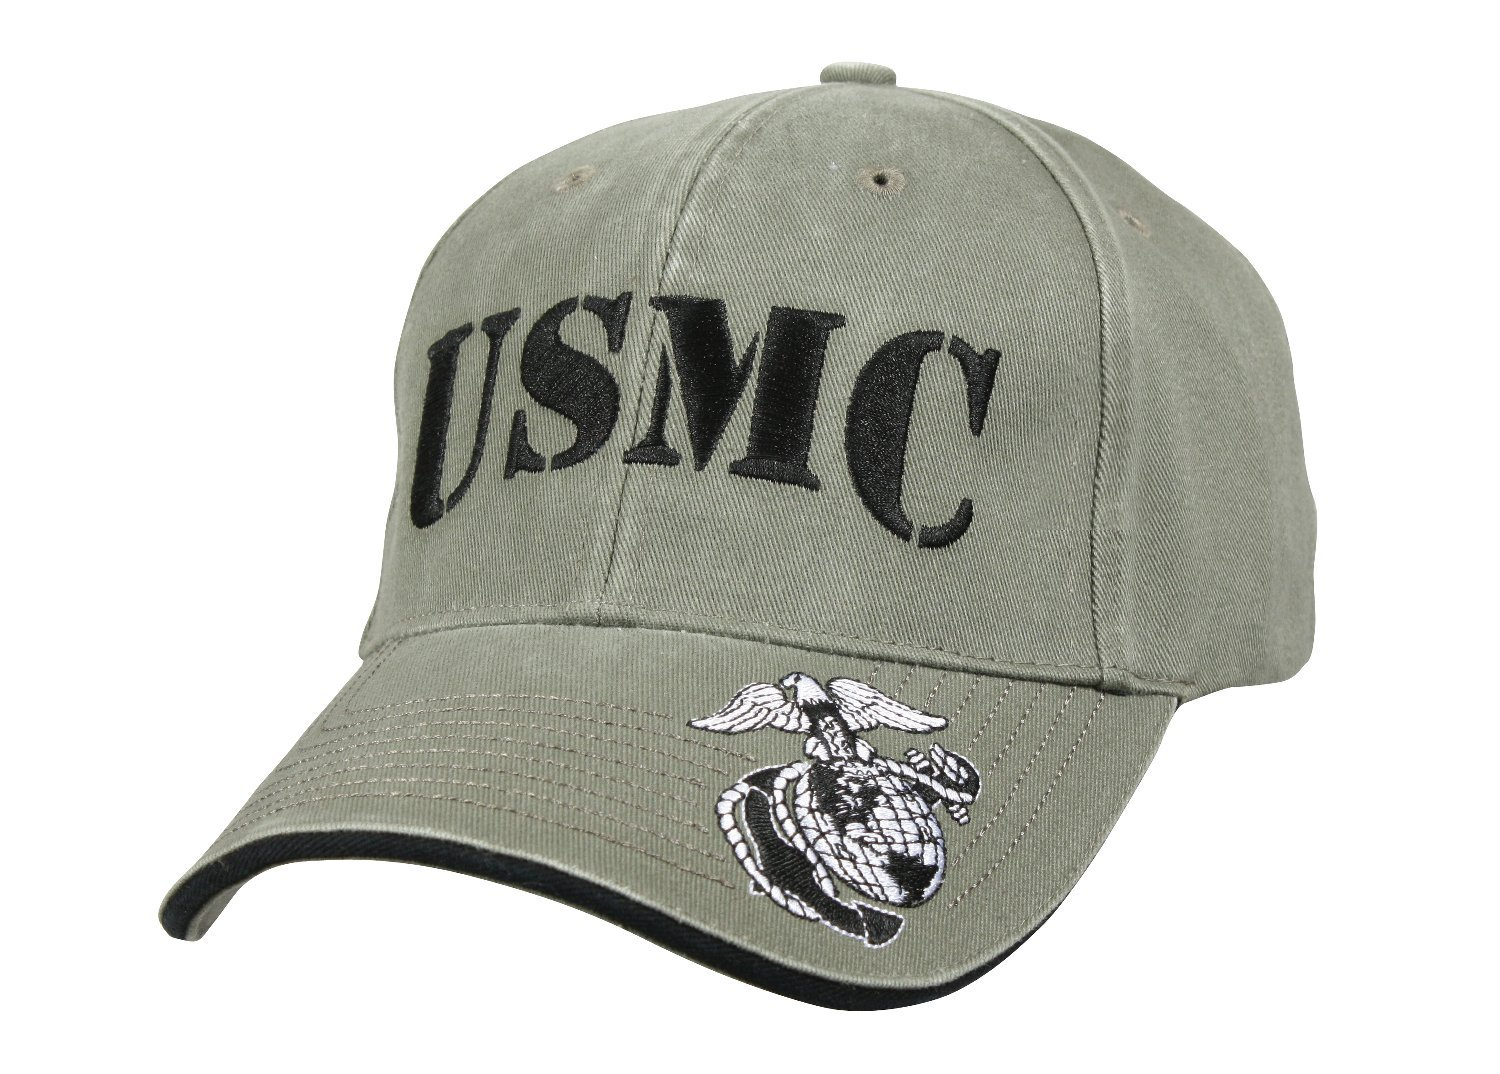 Amazon.com  Rothco Deluxe Vintage USMC Embroidered Low Pro Cap Olive Drab   Sports   Outdoors 3fdf9fd5263